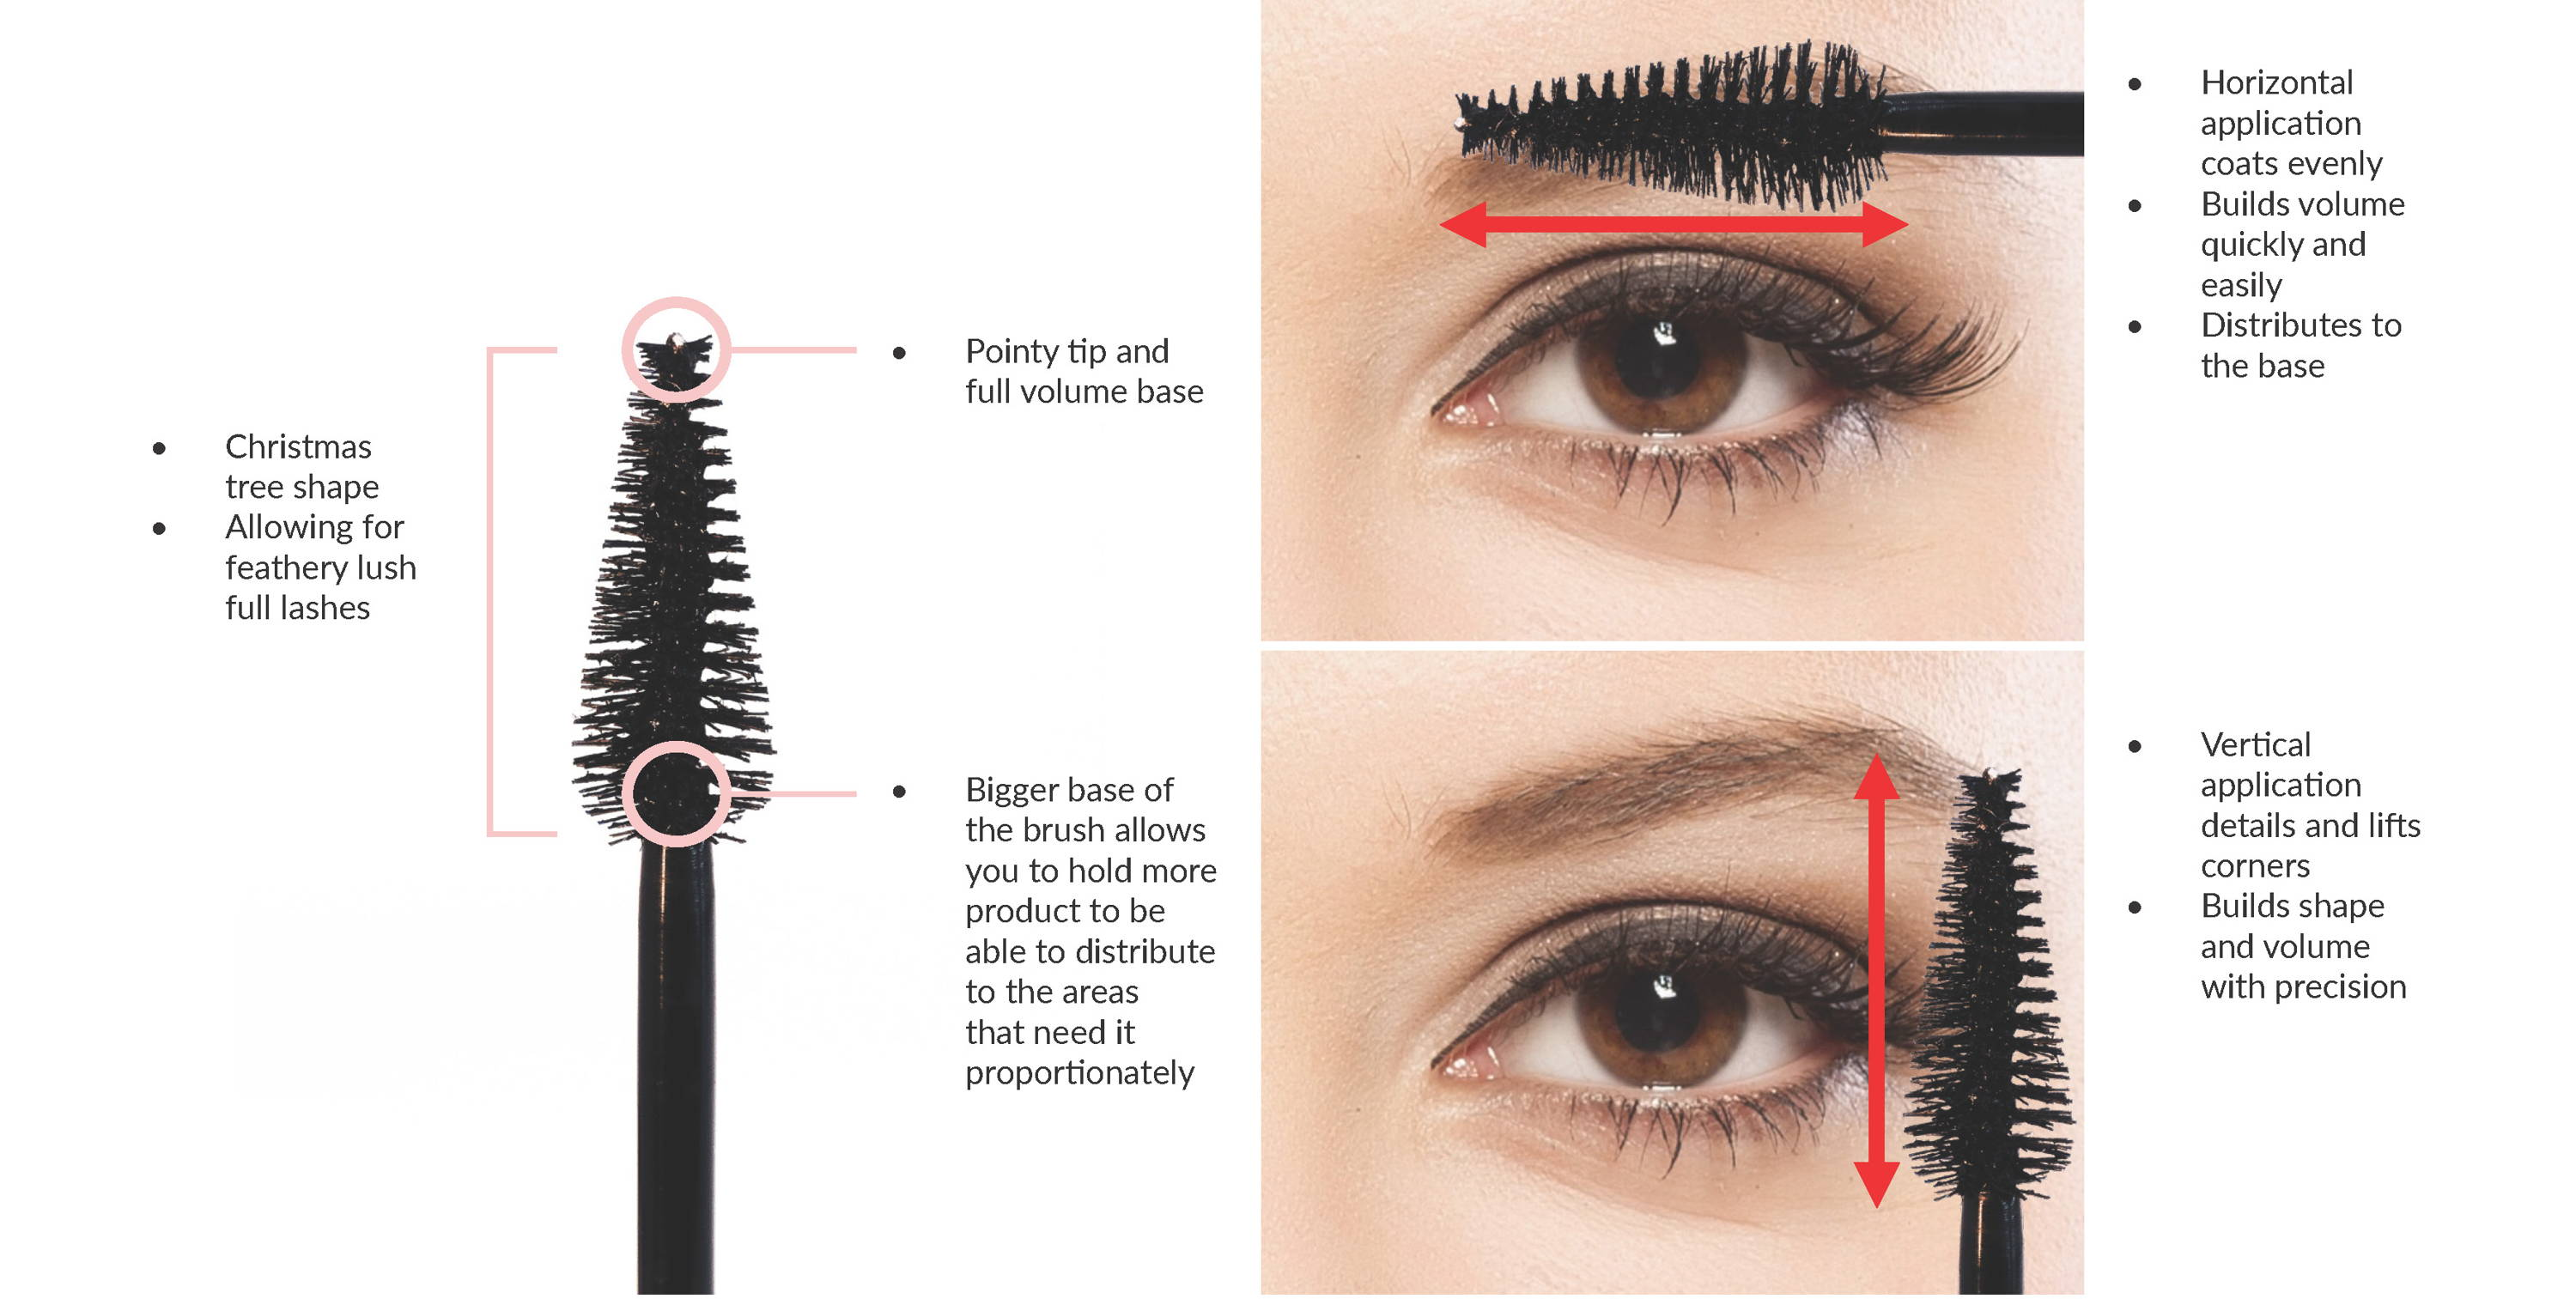 Christmas tree shape brush allows for feathery lush lashes Pointy tip and bigger base allows you to hold more product to be able to distribute to the areas that need it proportionately. Horizontal Application - Coats lashes evenly, builds volume quickly and easily. Helps distributes to the base. Vertical Application - Details and lifts corners. Builds shape and volume with precision.